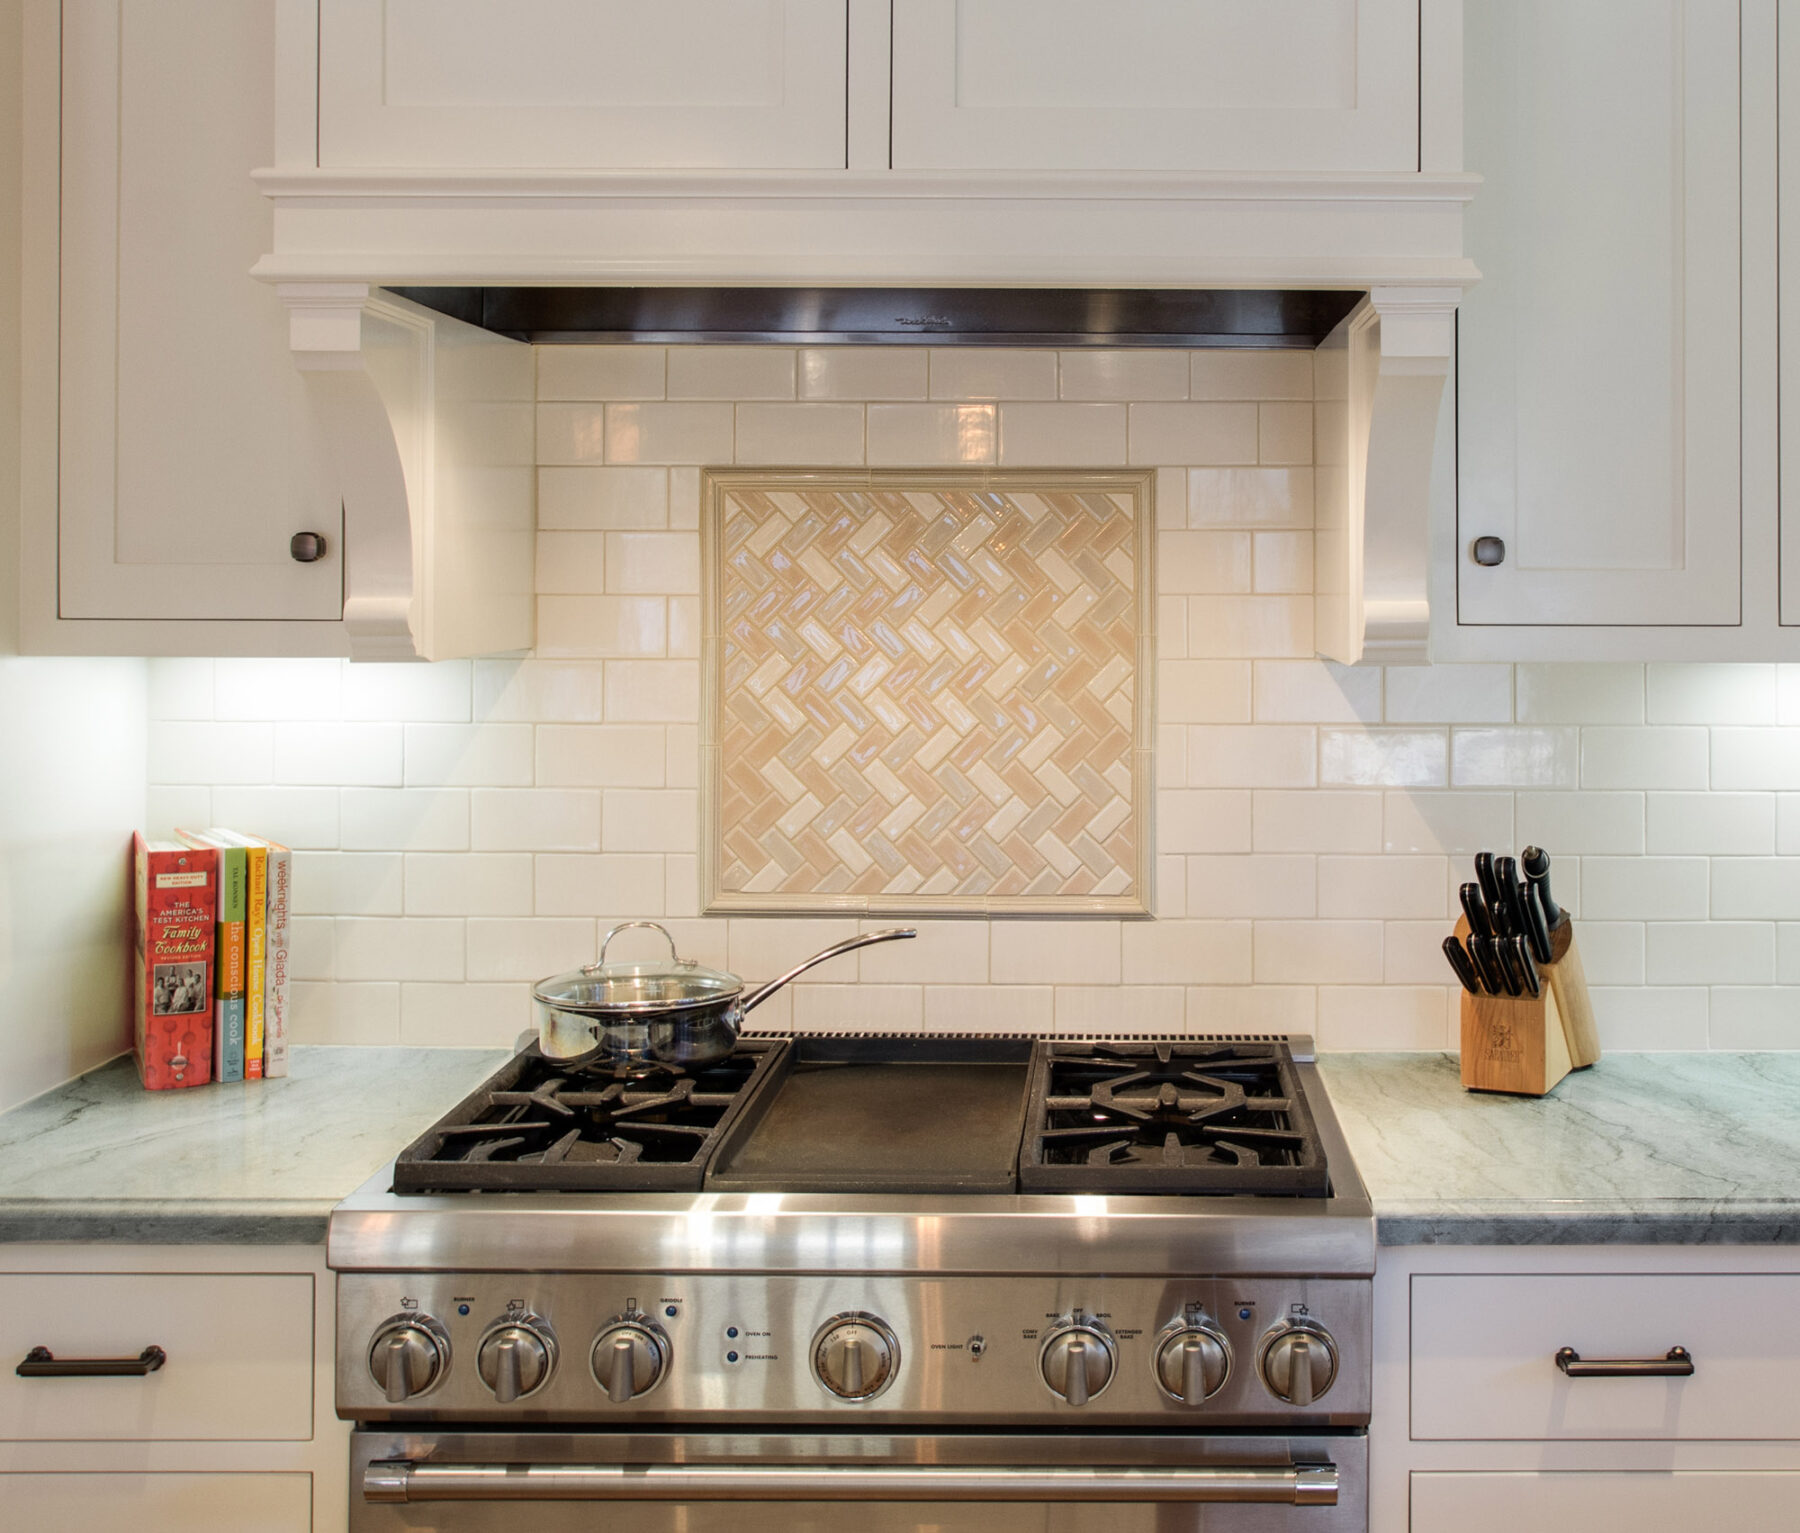 Custom tile backsplash and custom wood hood surround with corbels.